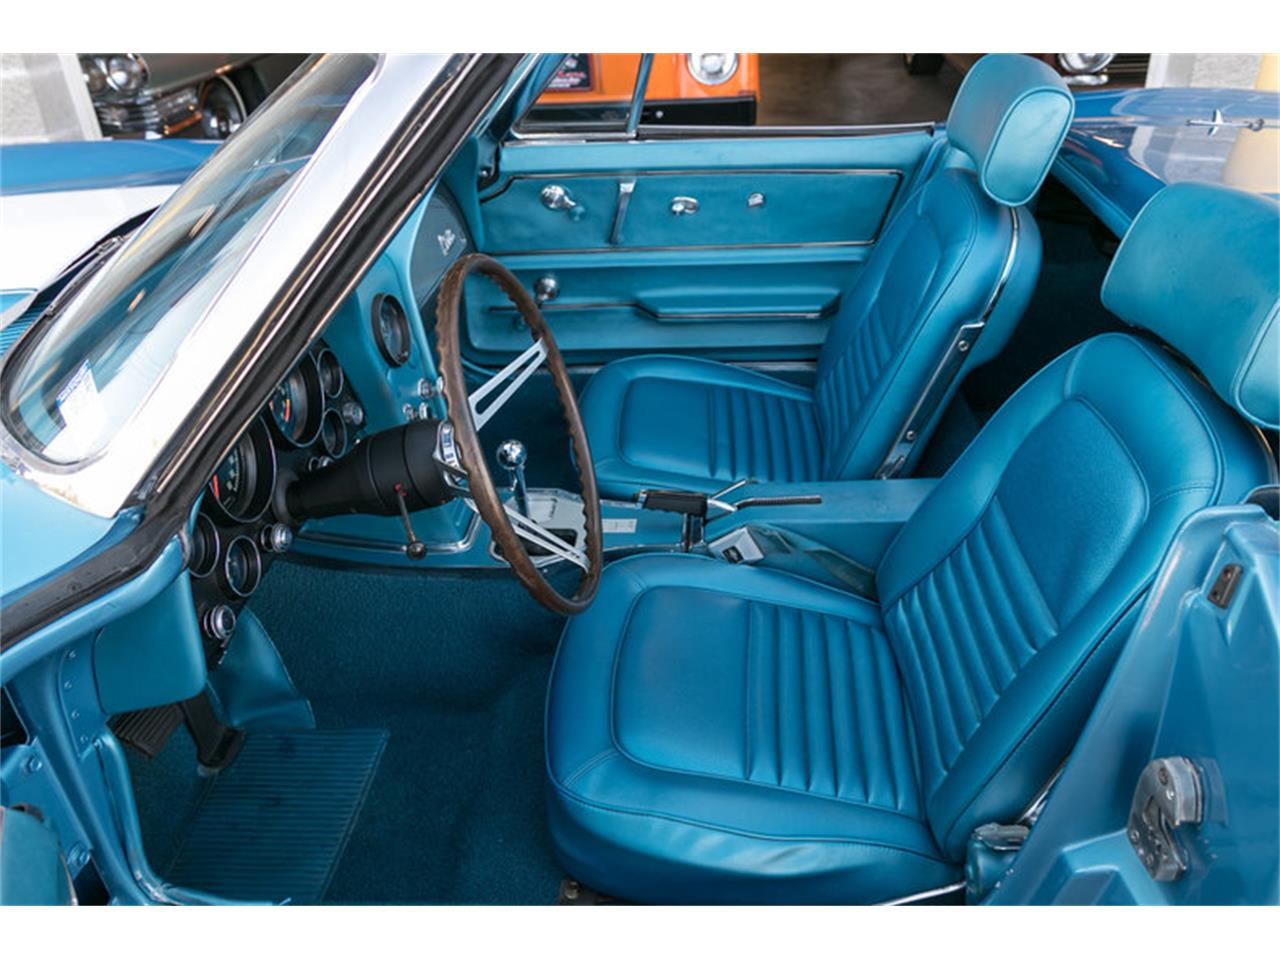 Large Picture of Classic '67 Corvette located in St. Charles Missouri Offered by Fast Lane Classic Cars Inc. - MDUJ